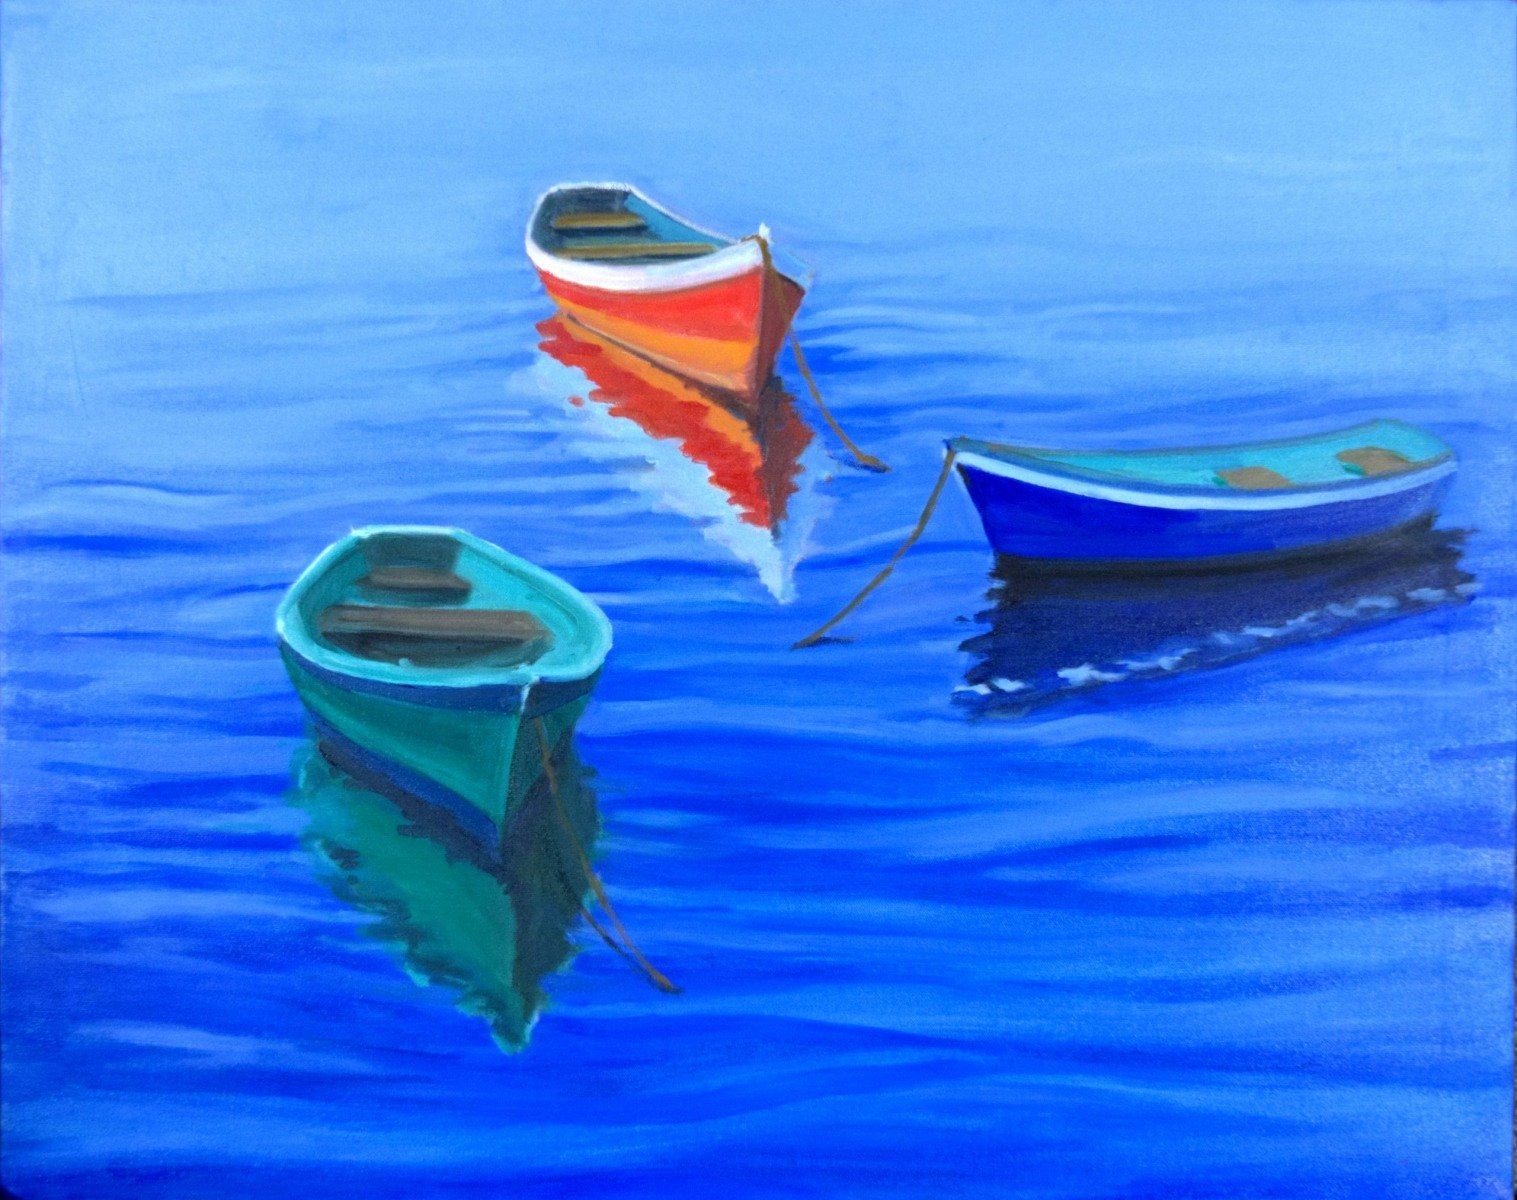 Name: Waiting to go fishing | Location: Location unavailable | Print Size: 24 x 30 | Frame Size: No Frame | Price: $300*